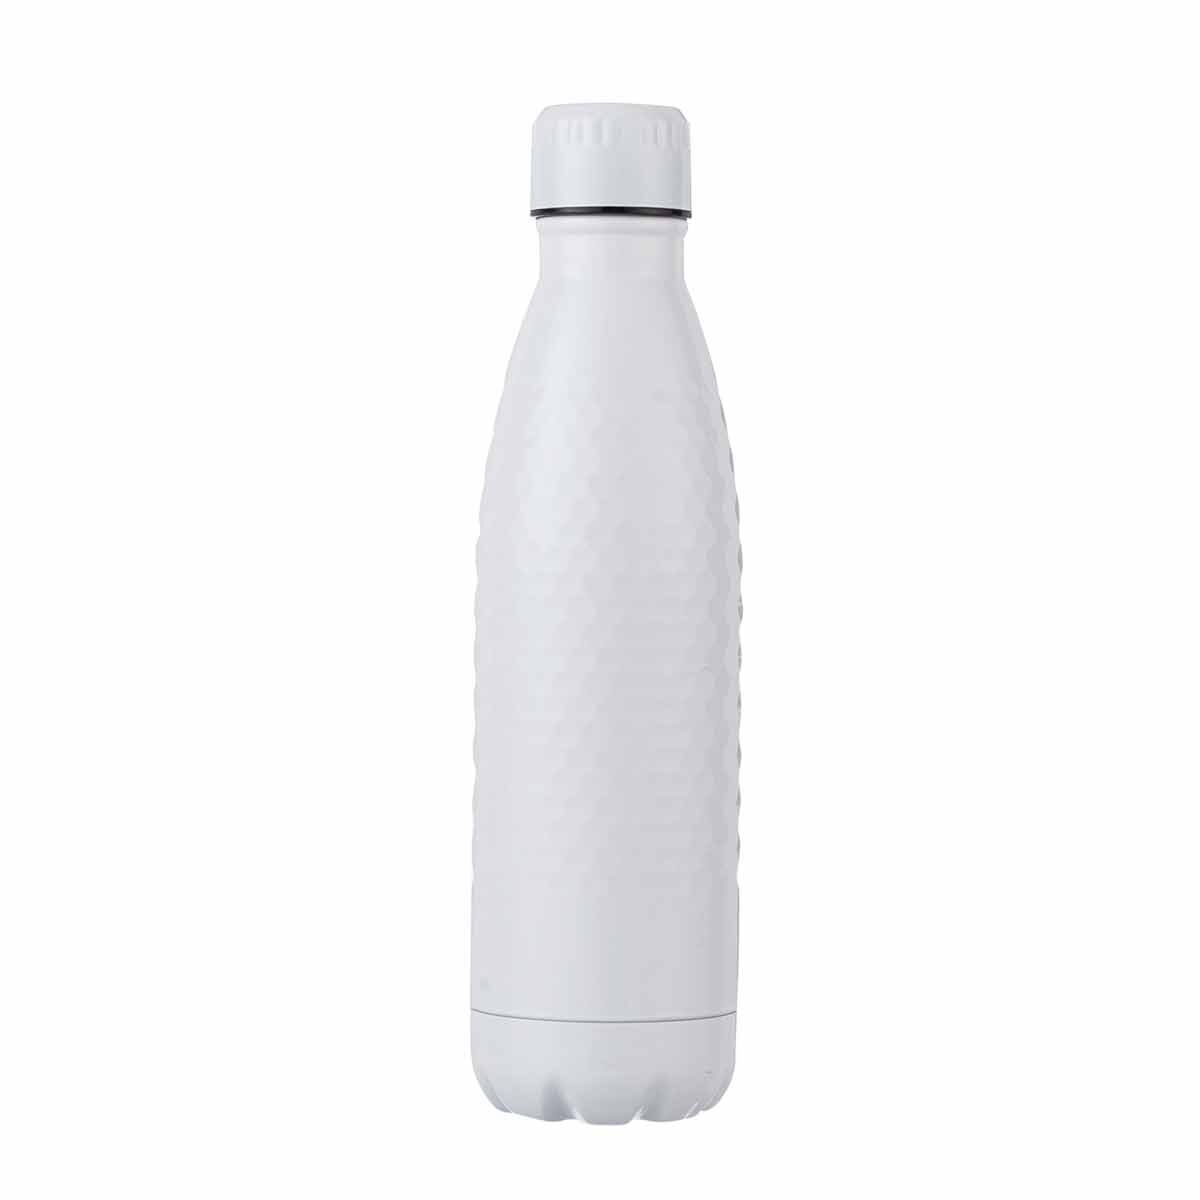 B and Co Honeycomb Stainless Steel Bottle 500ml